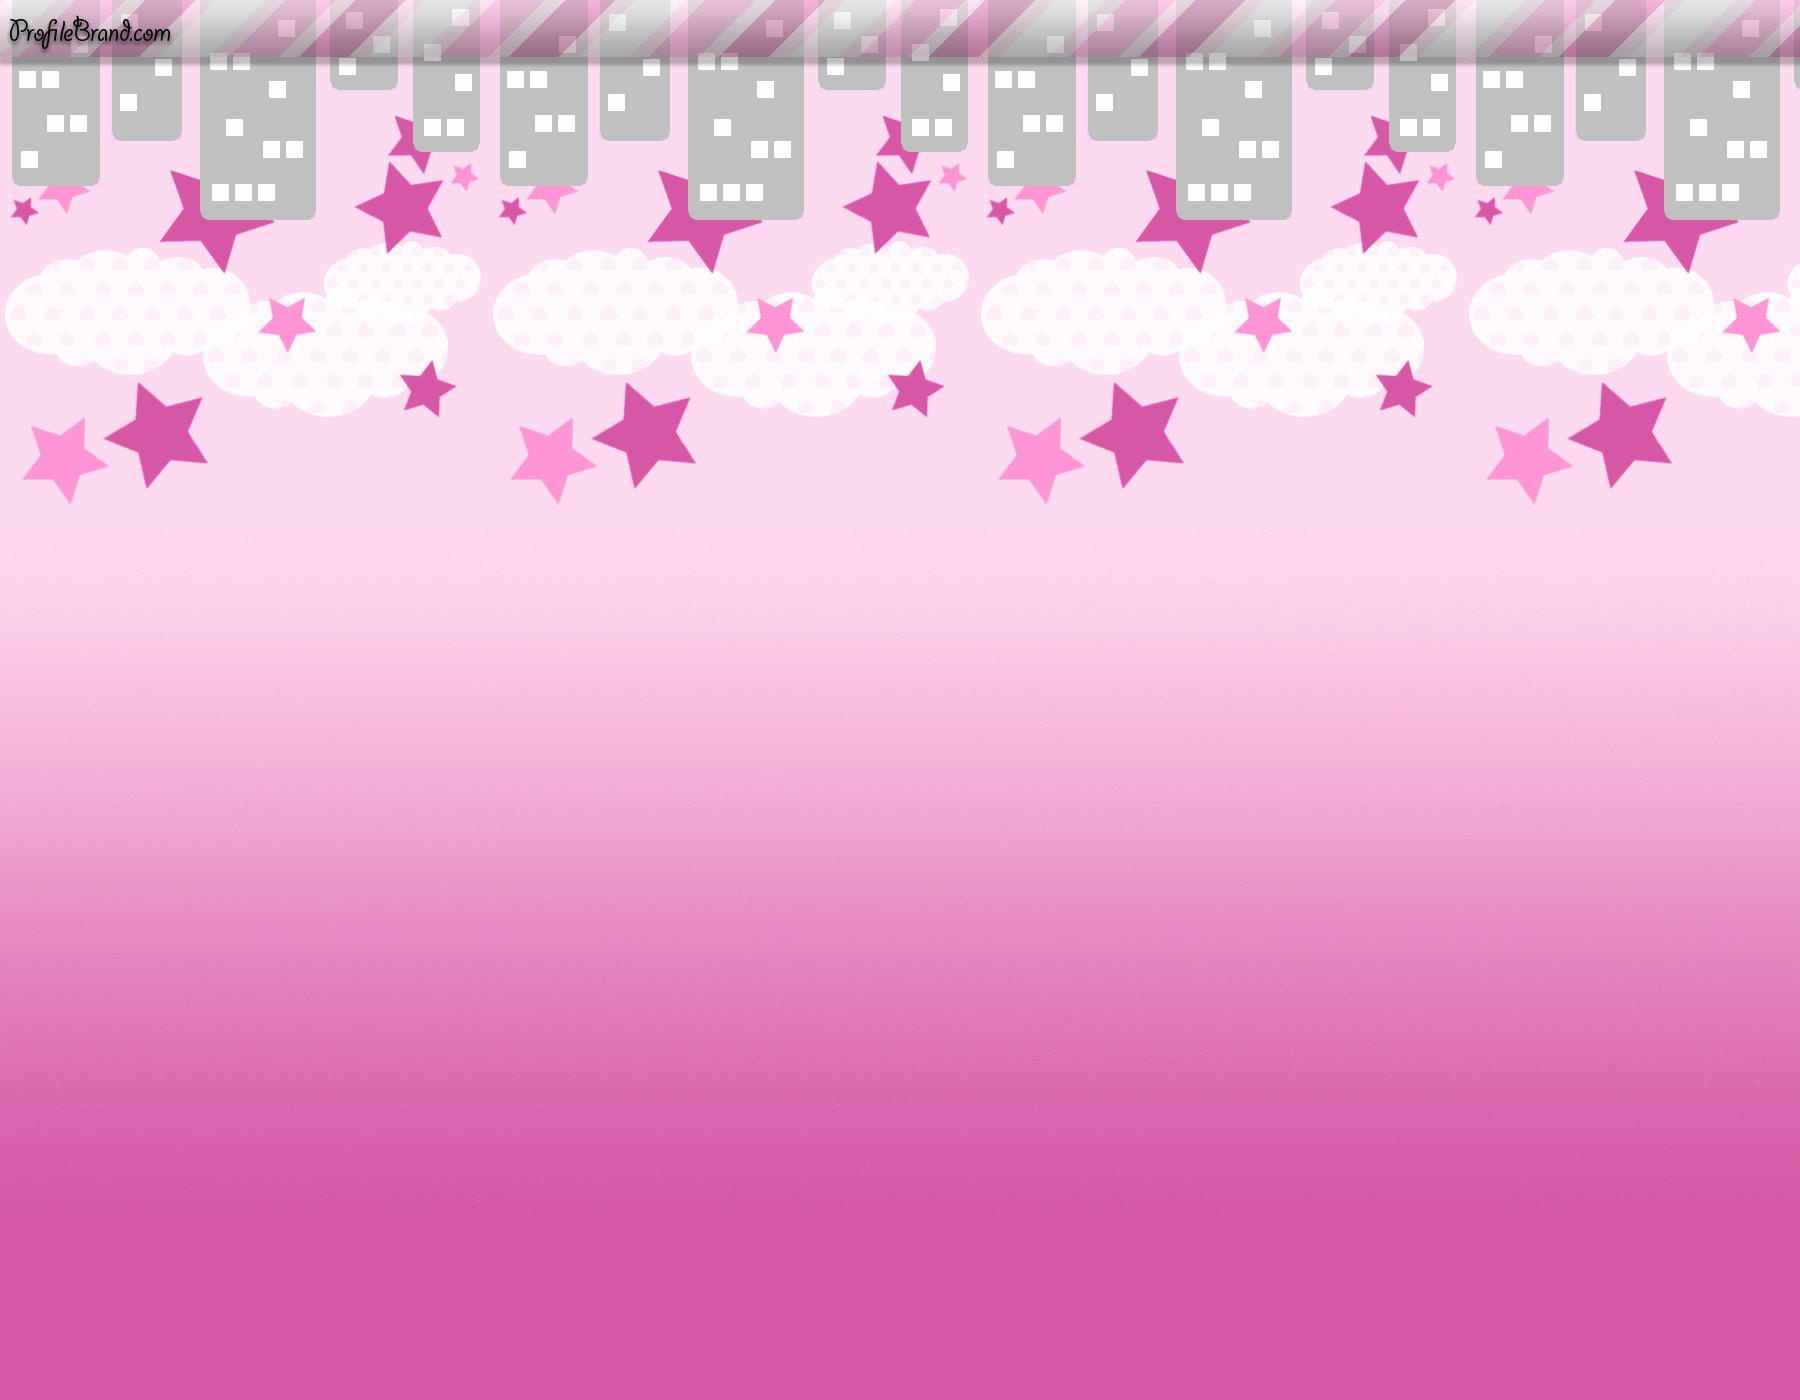 Wallpaper Twitter Pink Pink Clouds Twitter Background 1800x1400